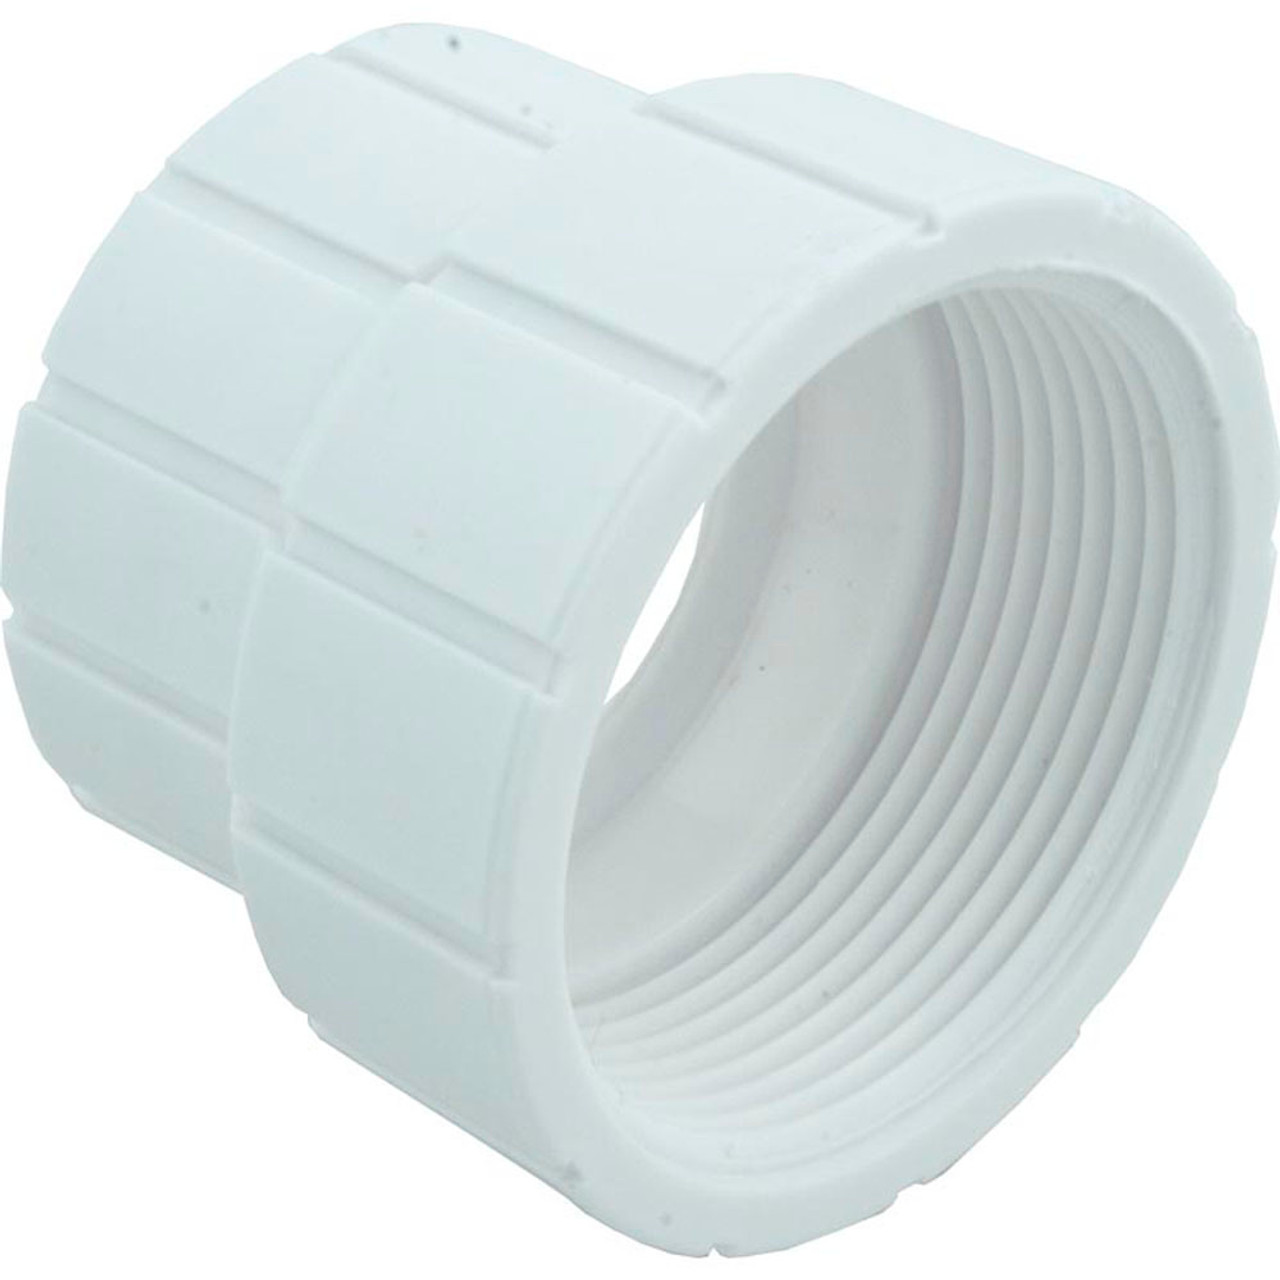 Polaris 65 165 and Turbo Turtle Pool Cleaner Connector Chamber Part 6-408-00